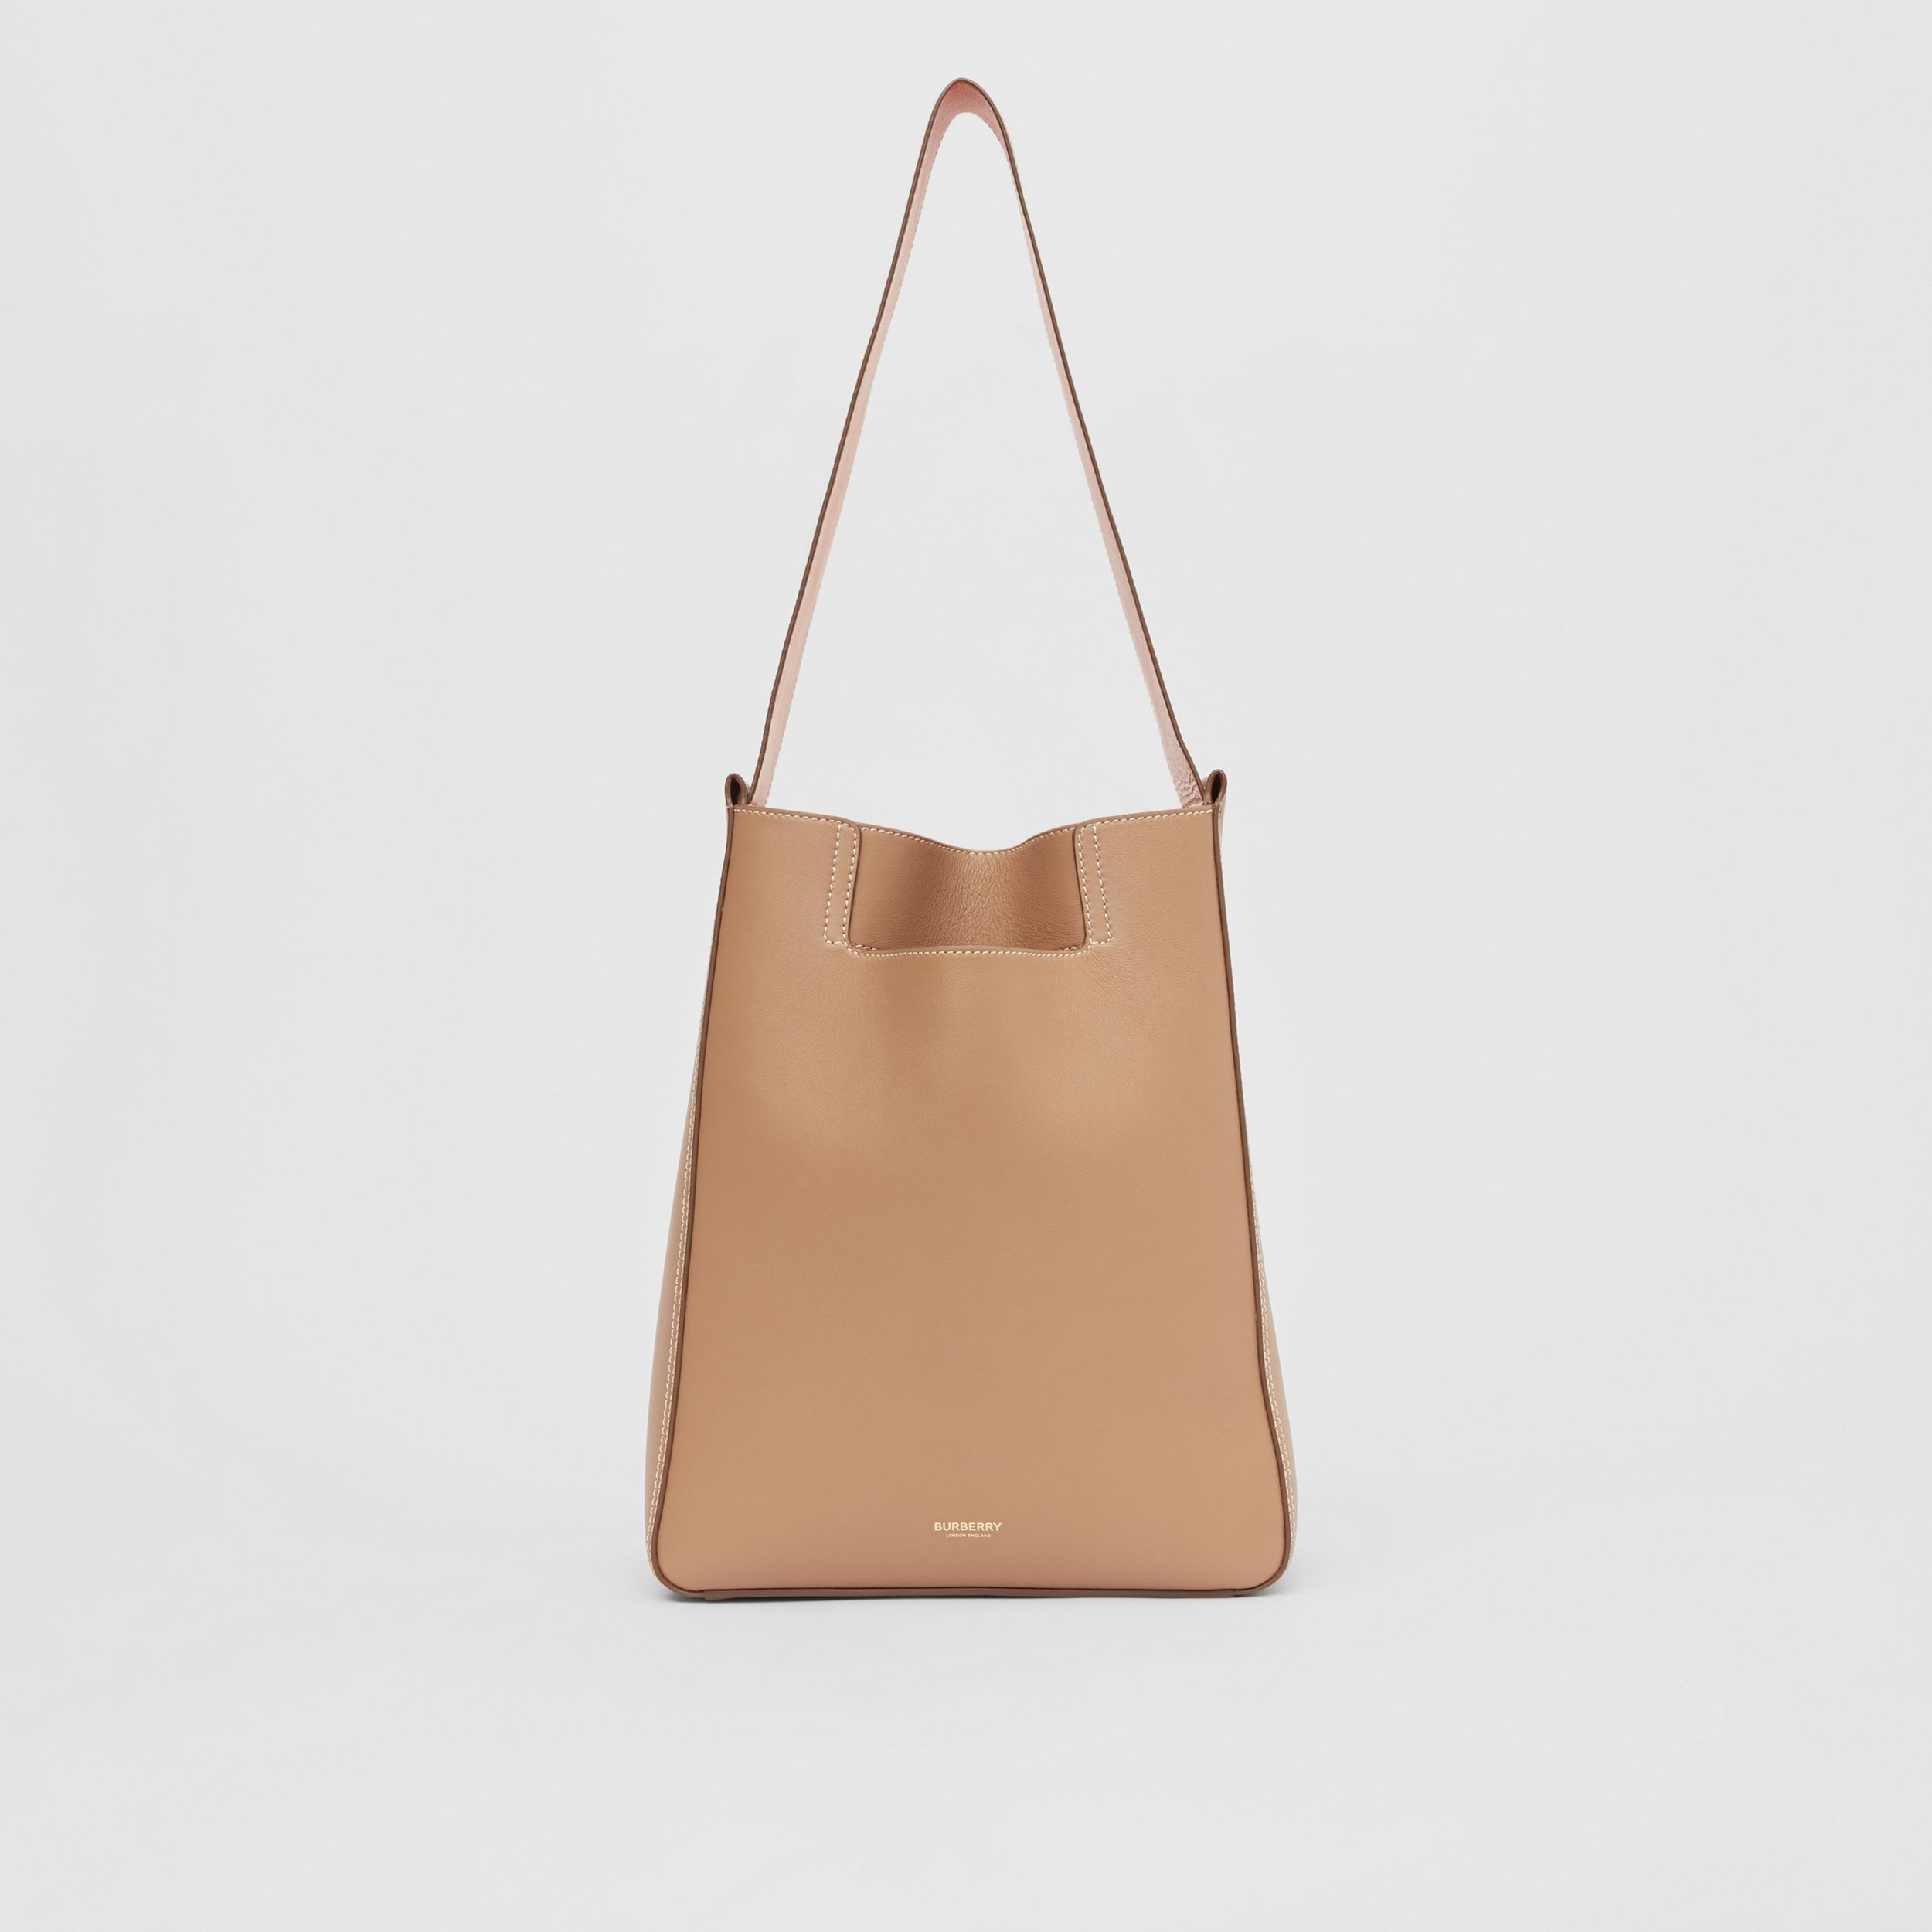 Small Leather Basket Bag in Camel - Women | Burberry - 1